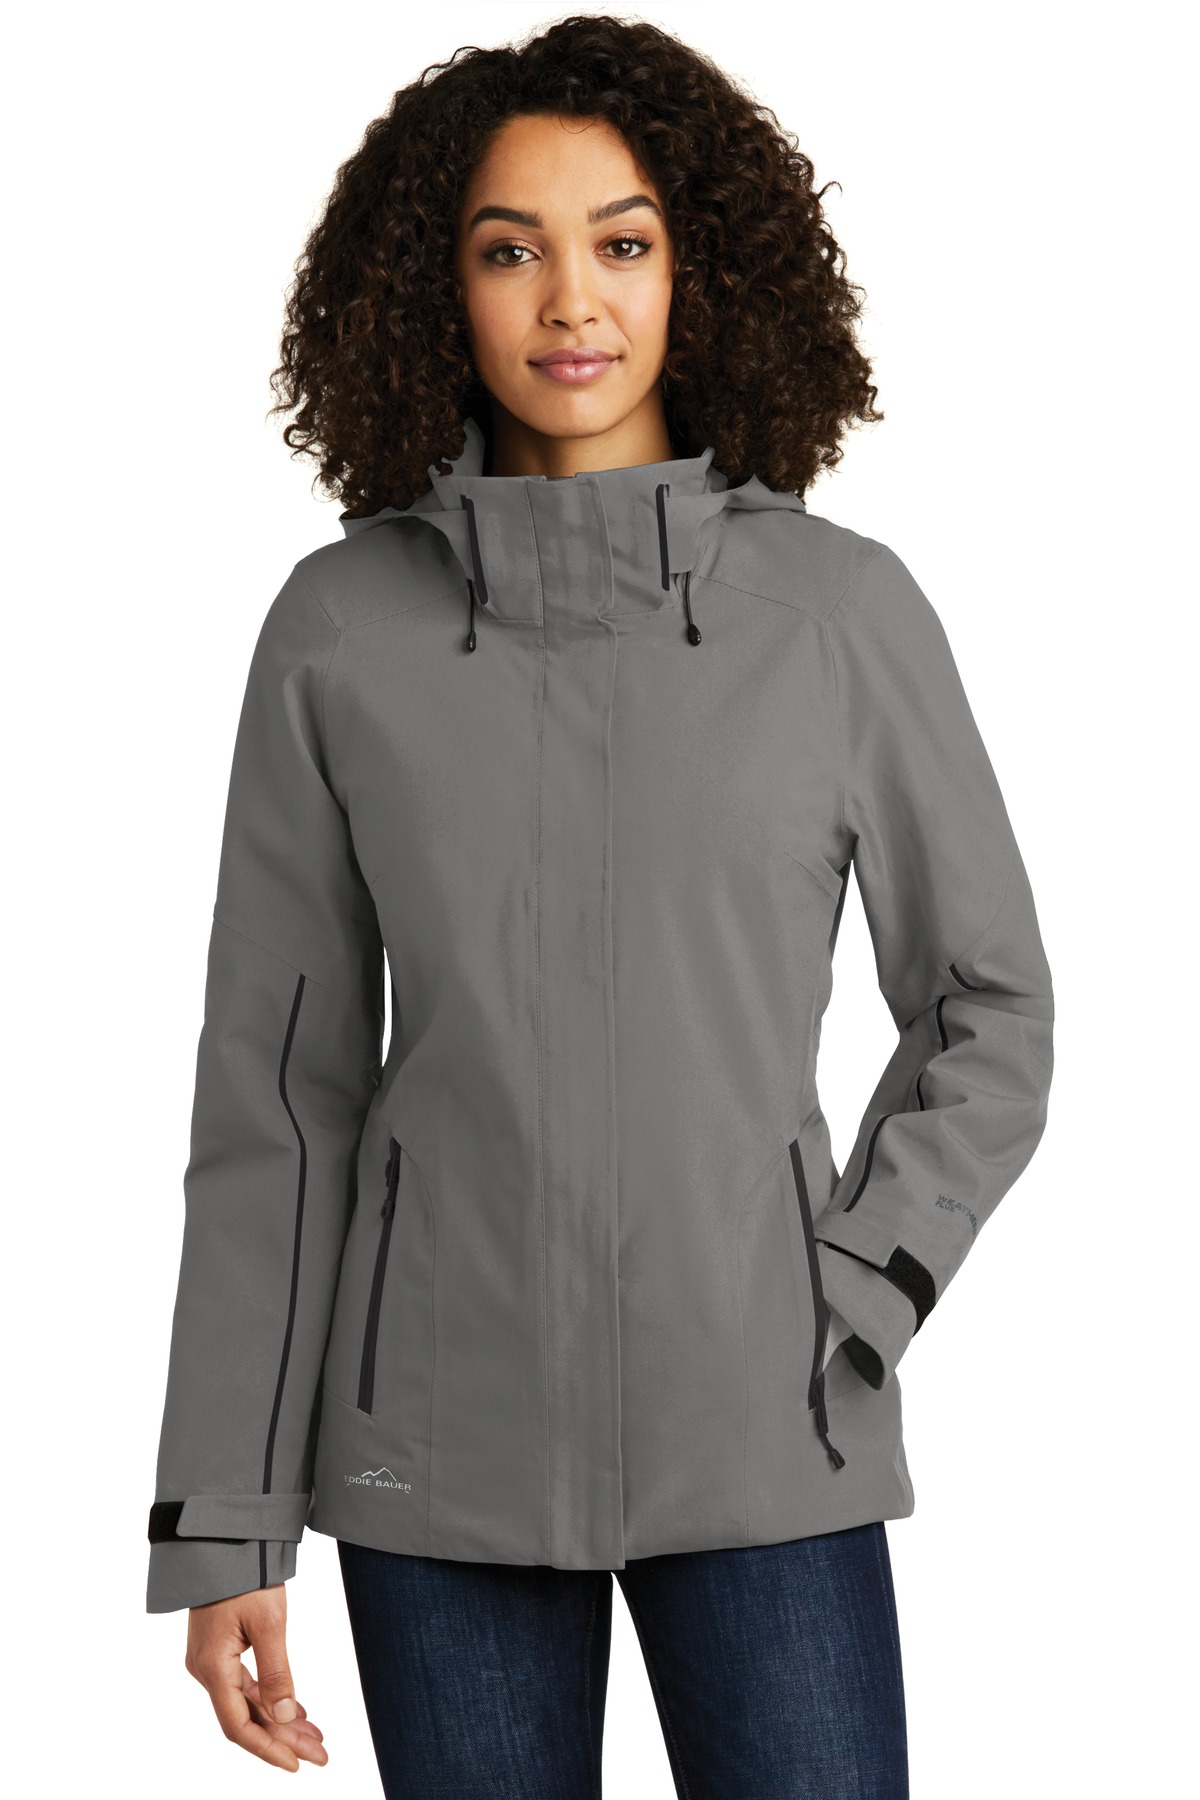 Eddie Bauer Ladies WeatherEdge Plus Insulated Jacket. EB555